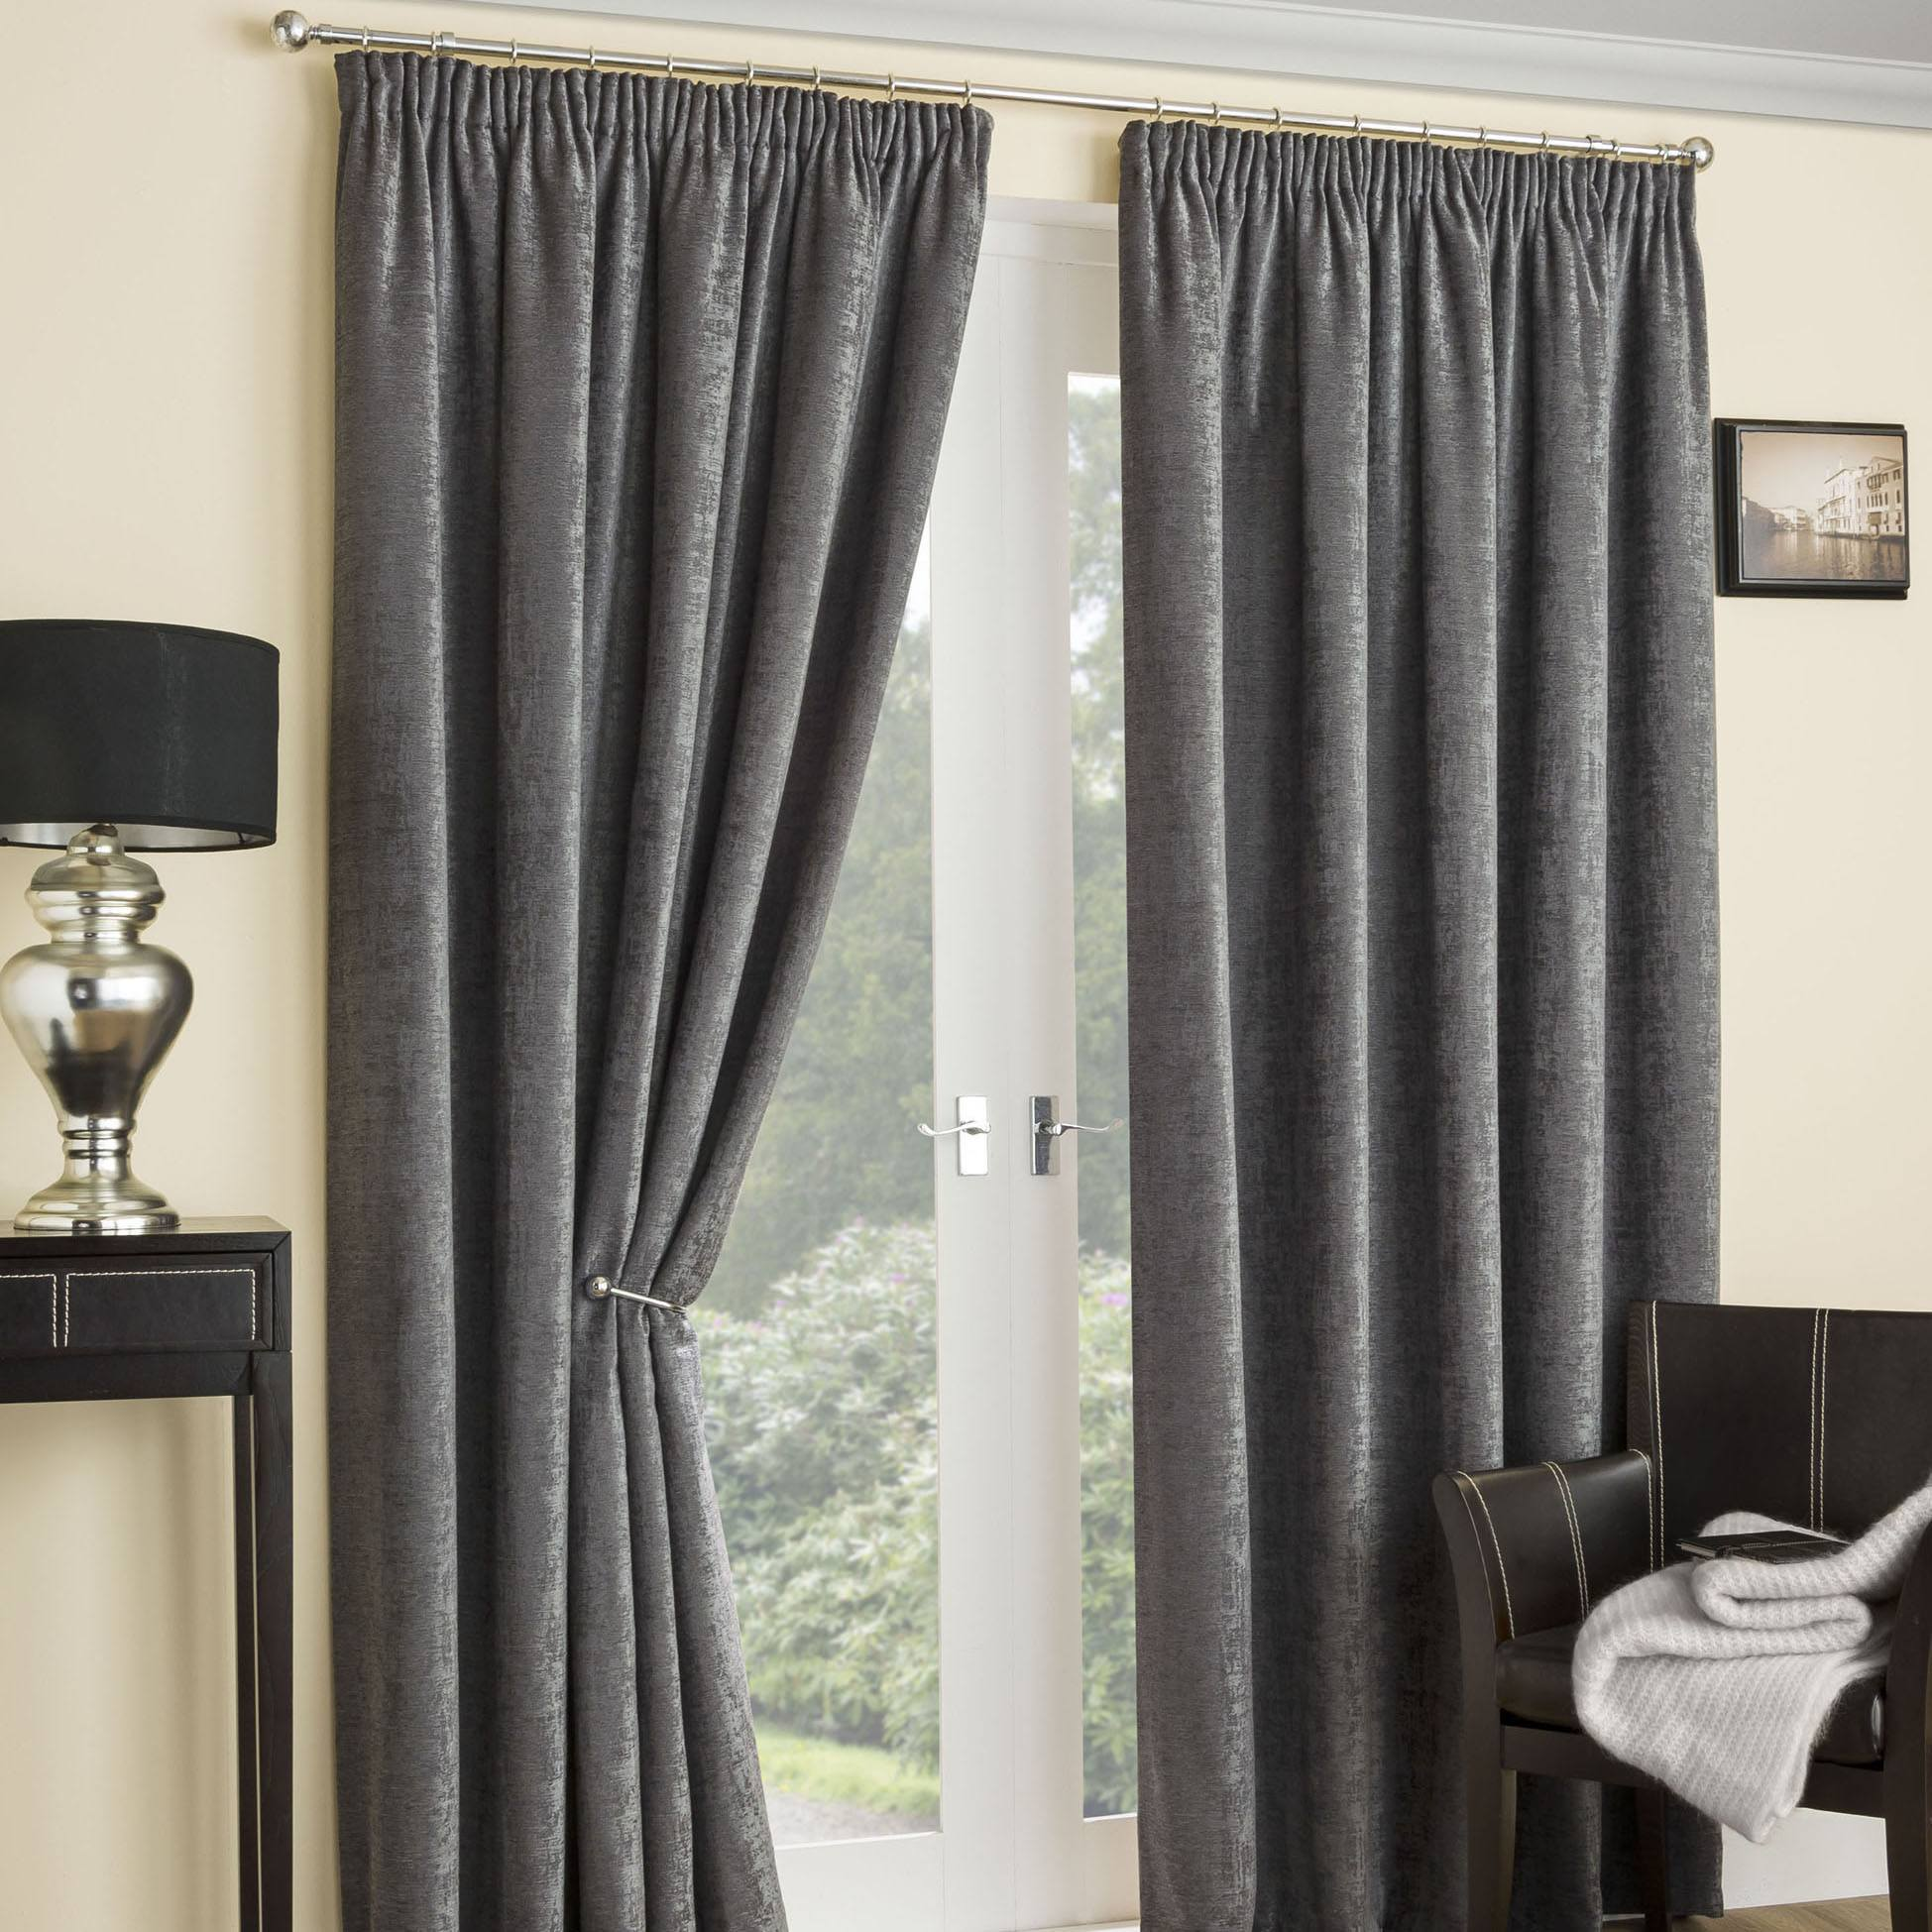 Thermal curtains grey - Balmoral Thermal Interlined Ready Made Curtains